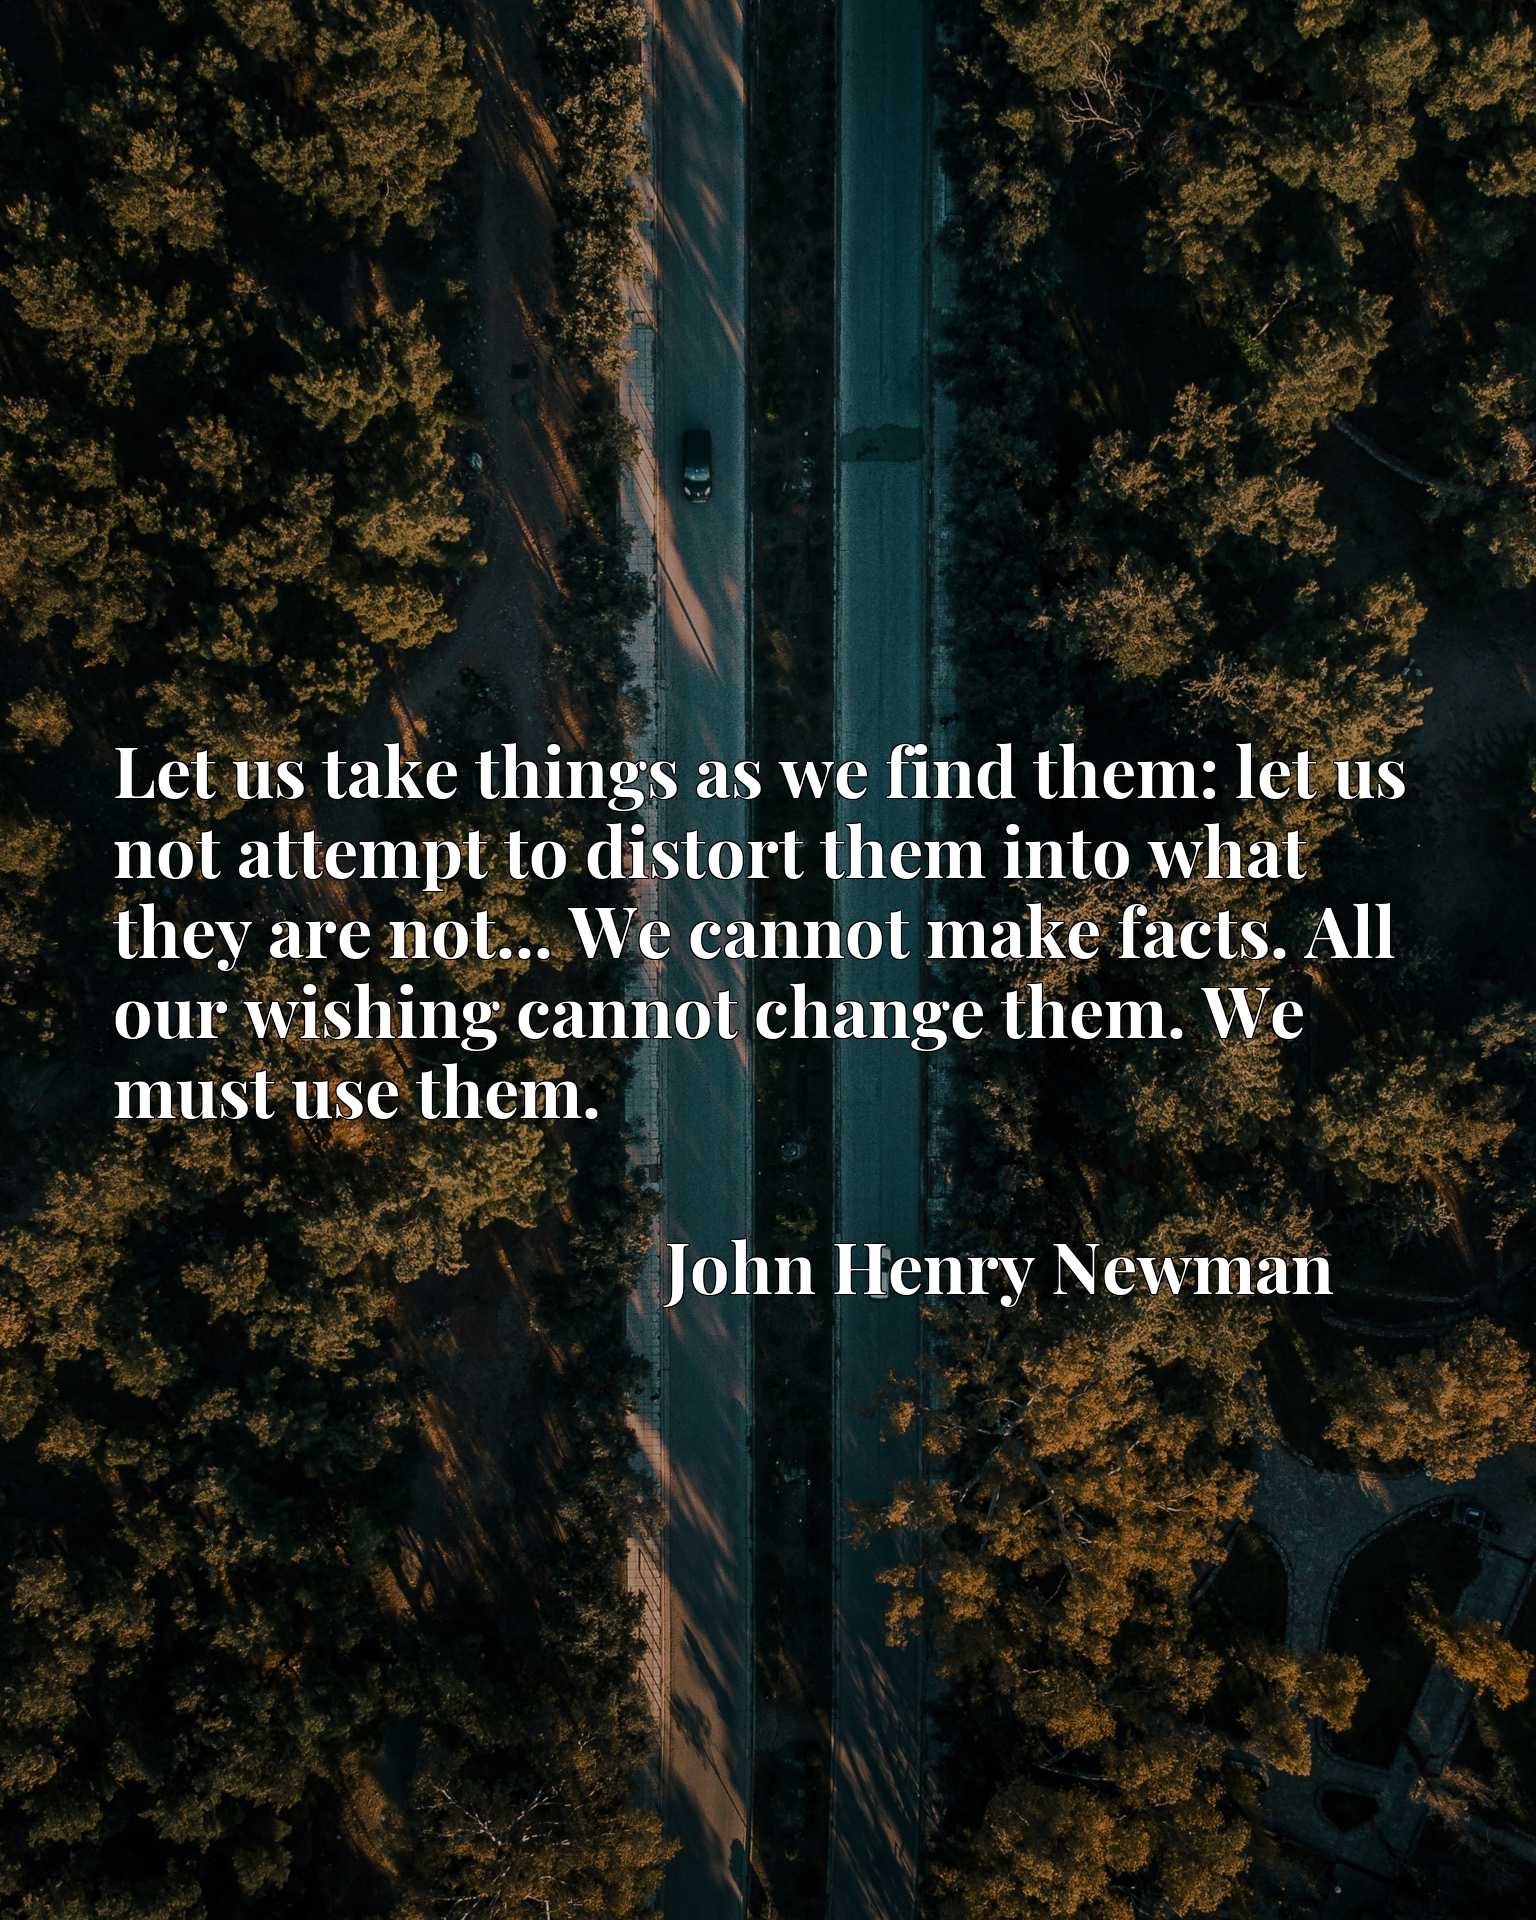 Let us take things as we find them: let us not attempt to distort them into what they are not... We cannot make facts. All our wishing cannot change them. We must use them.